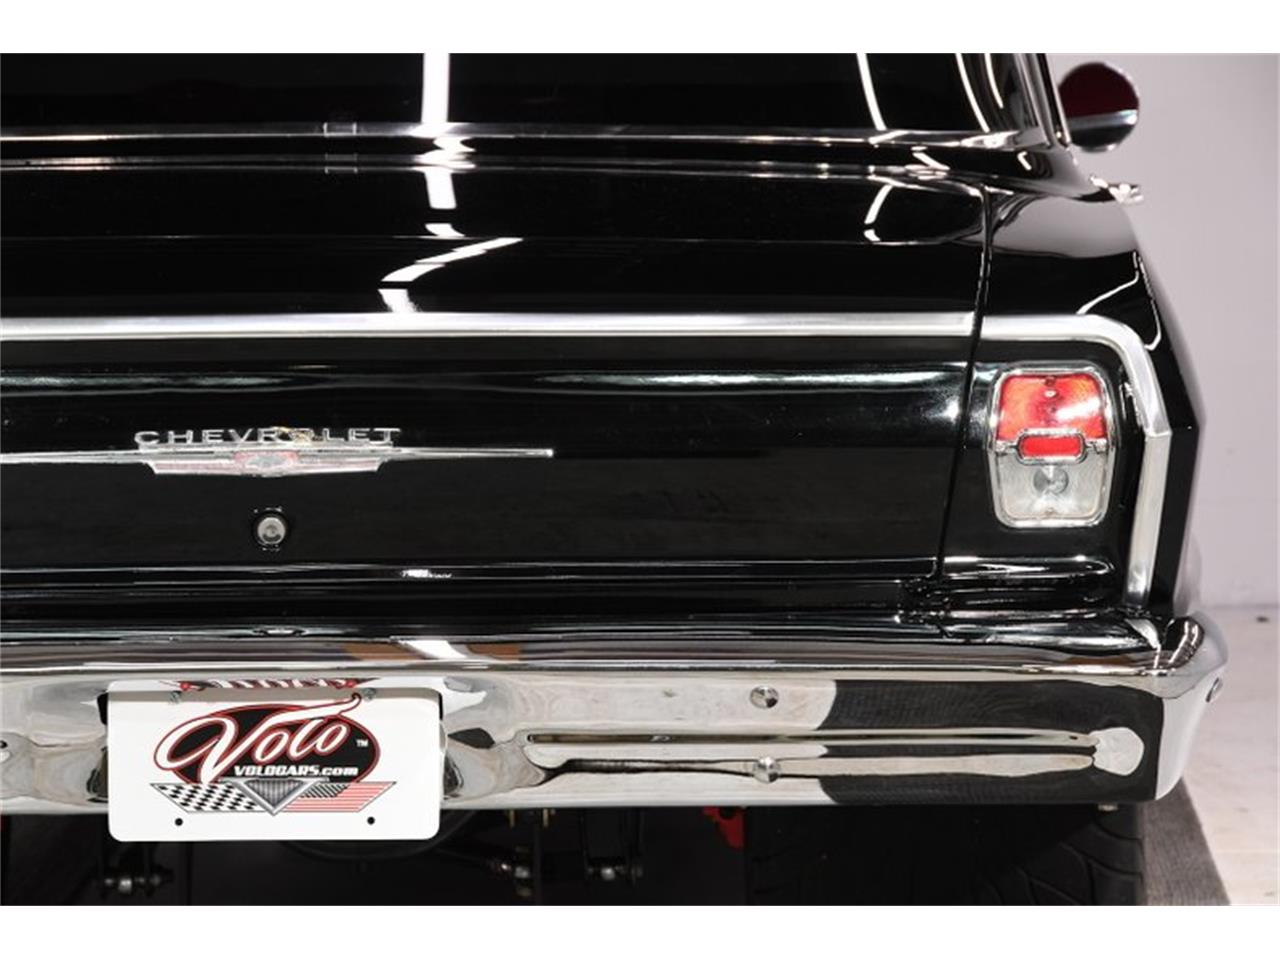 Large Picture of Classic 1962 Chevrolet Nova located in Volo Illinois - $67,998.00 - OB0N